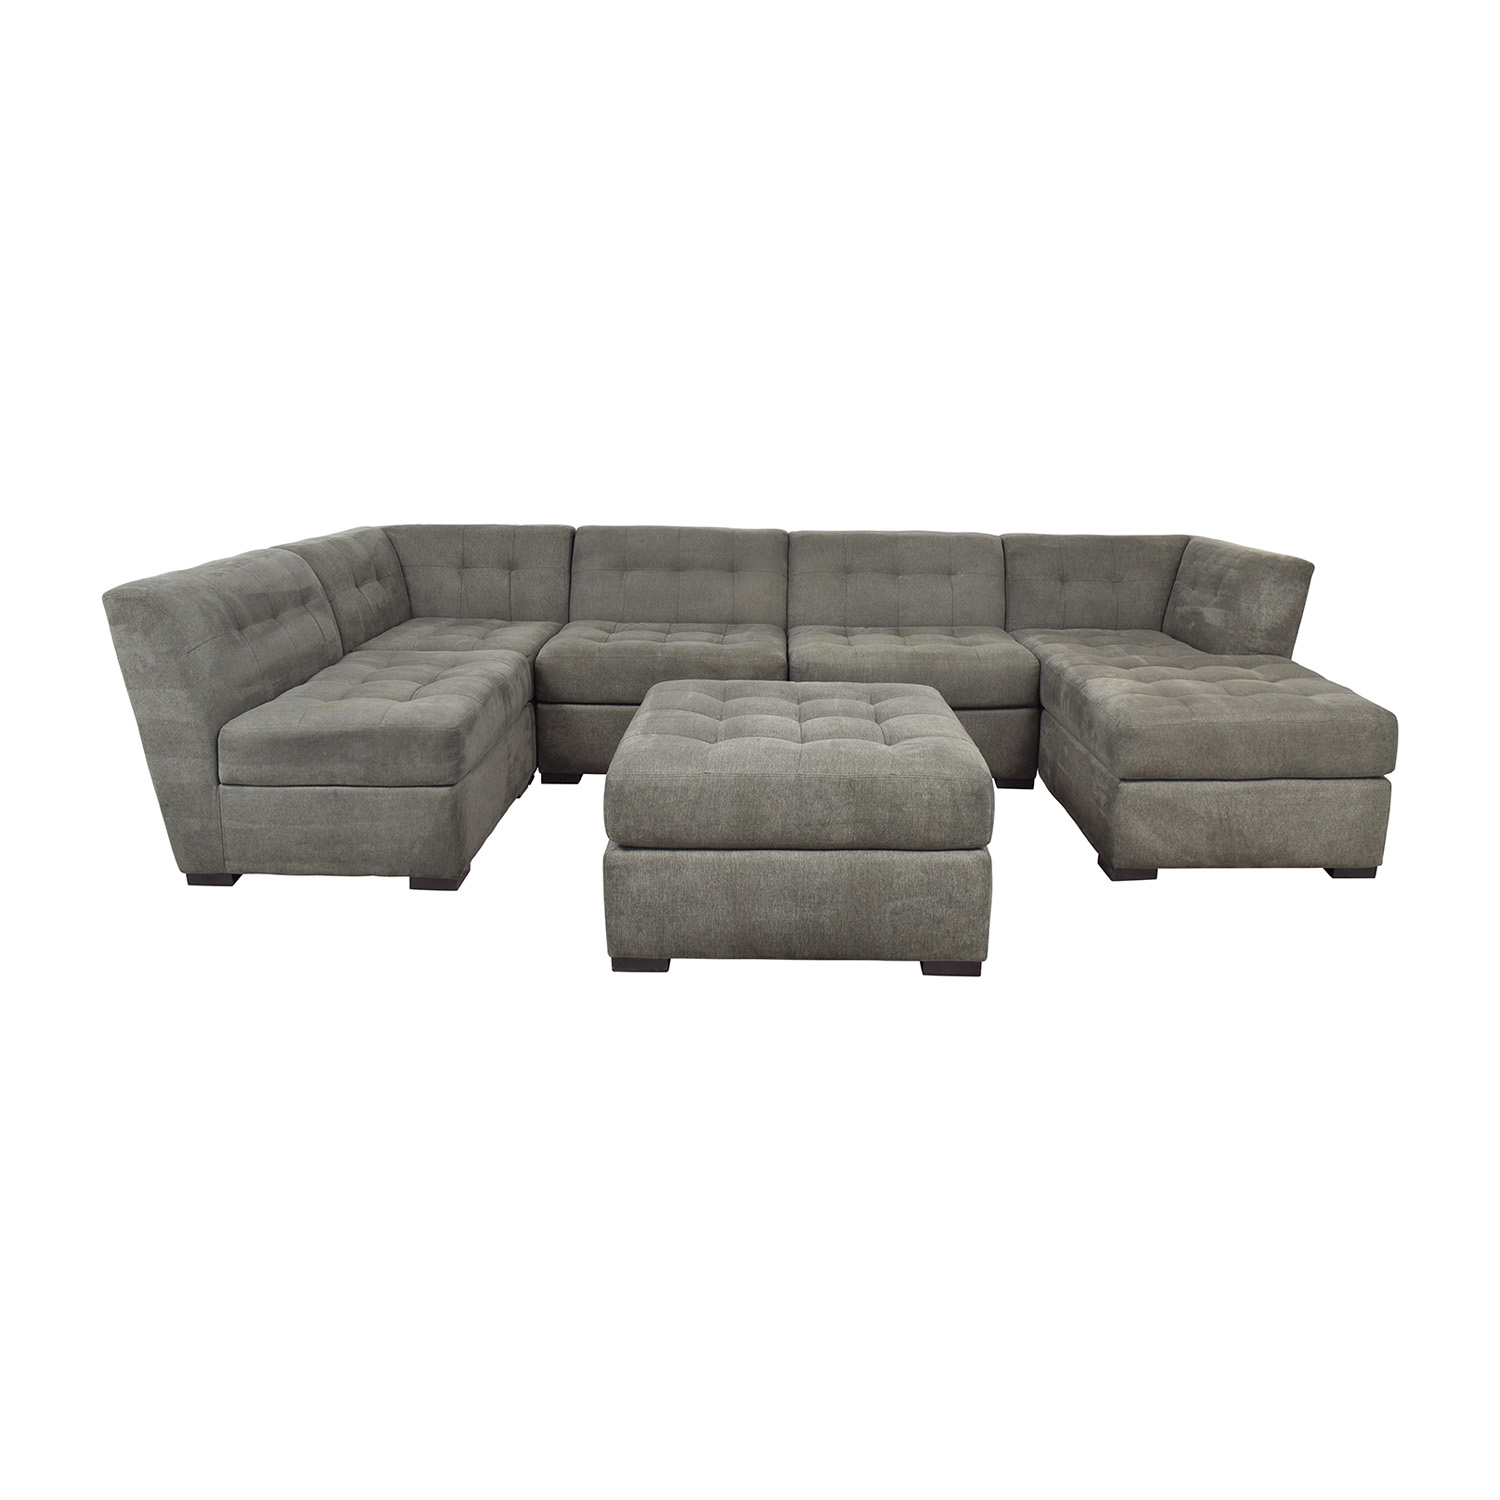 Macy's Macy's Roxanne II Modular Sectional Sofa with Chaise & Ottoman price